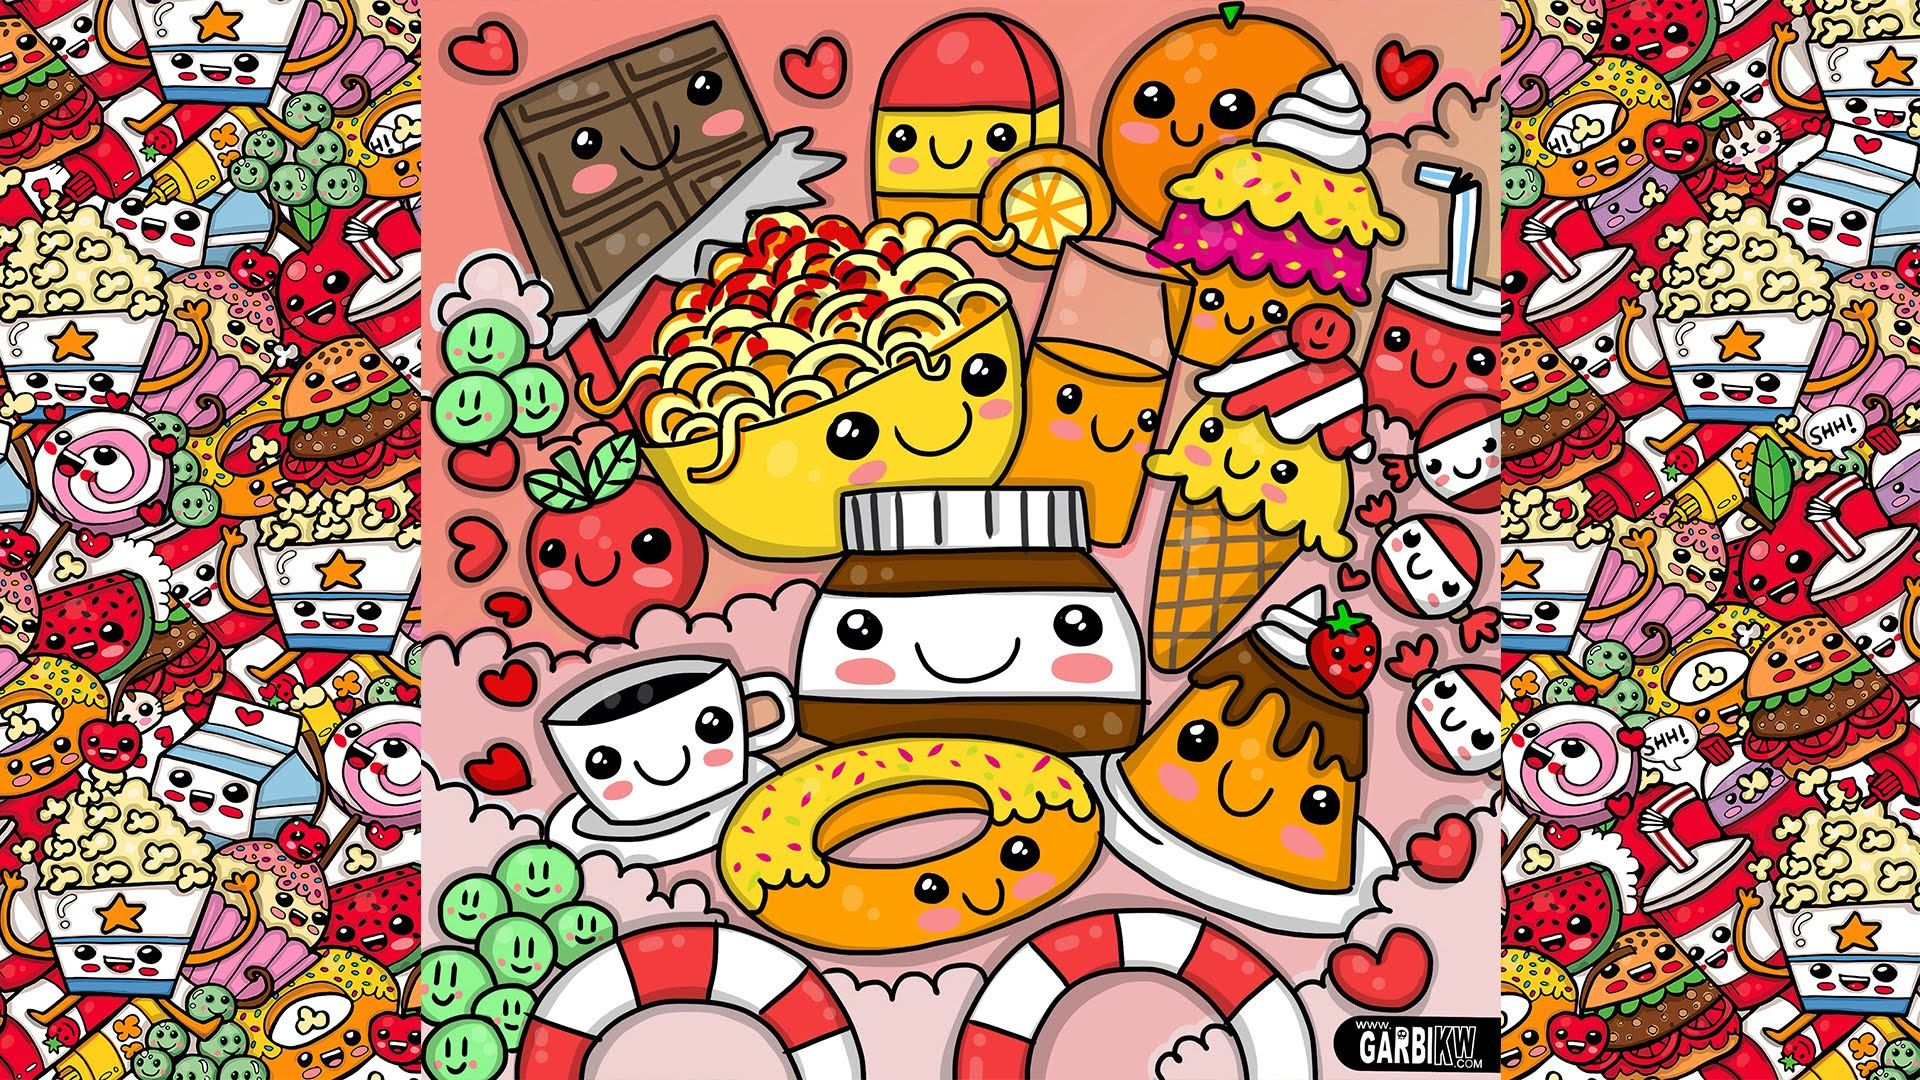 How To Draw Party Kawaii Food by Garbi KW cute cartoons